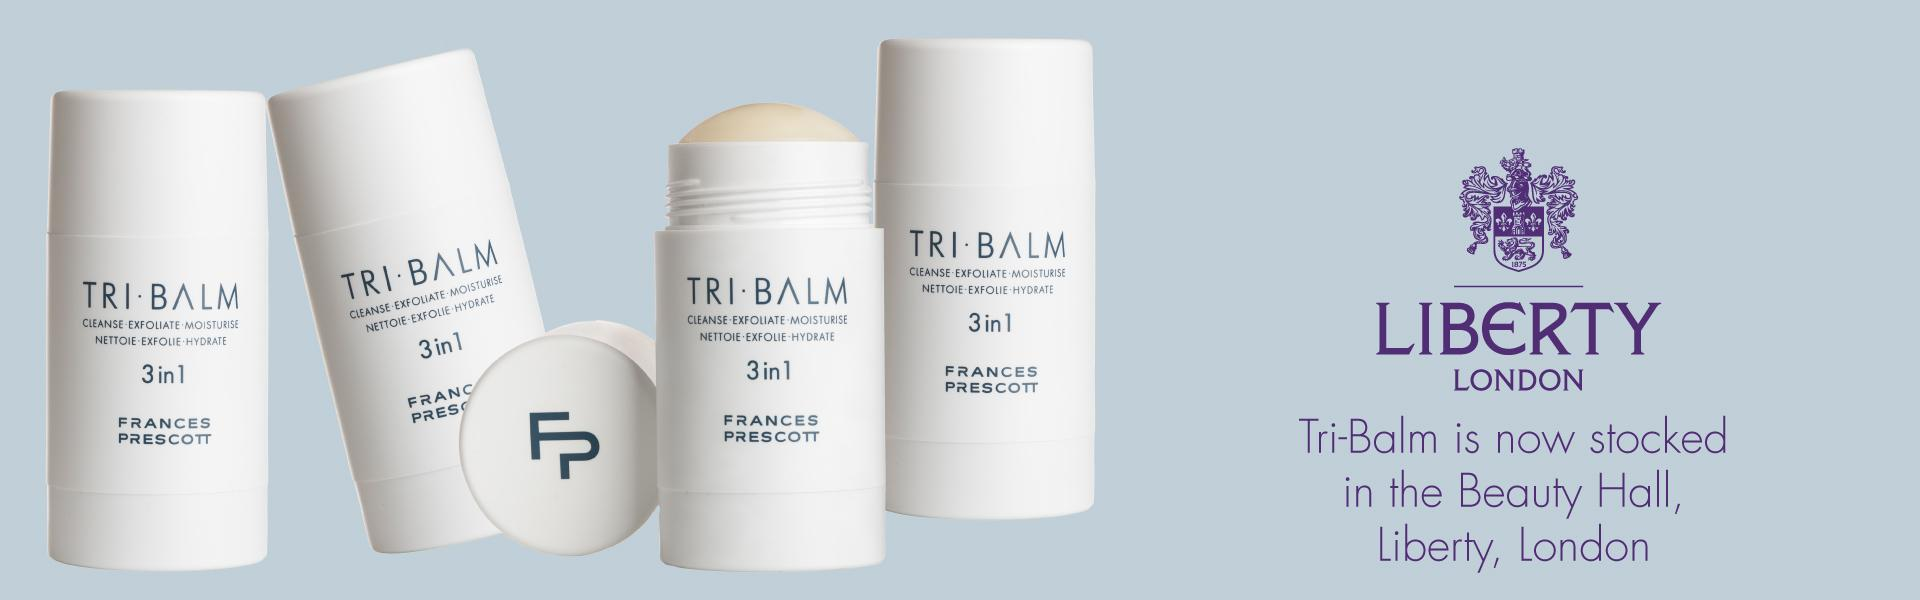 Tri-Balm photographed by Ian Skelton stocked at Liberty